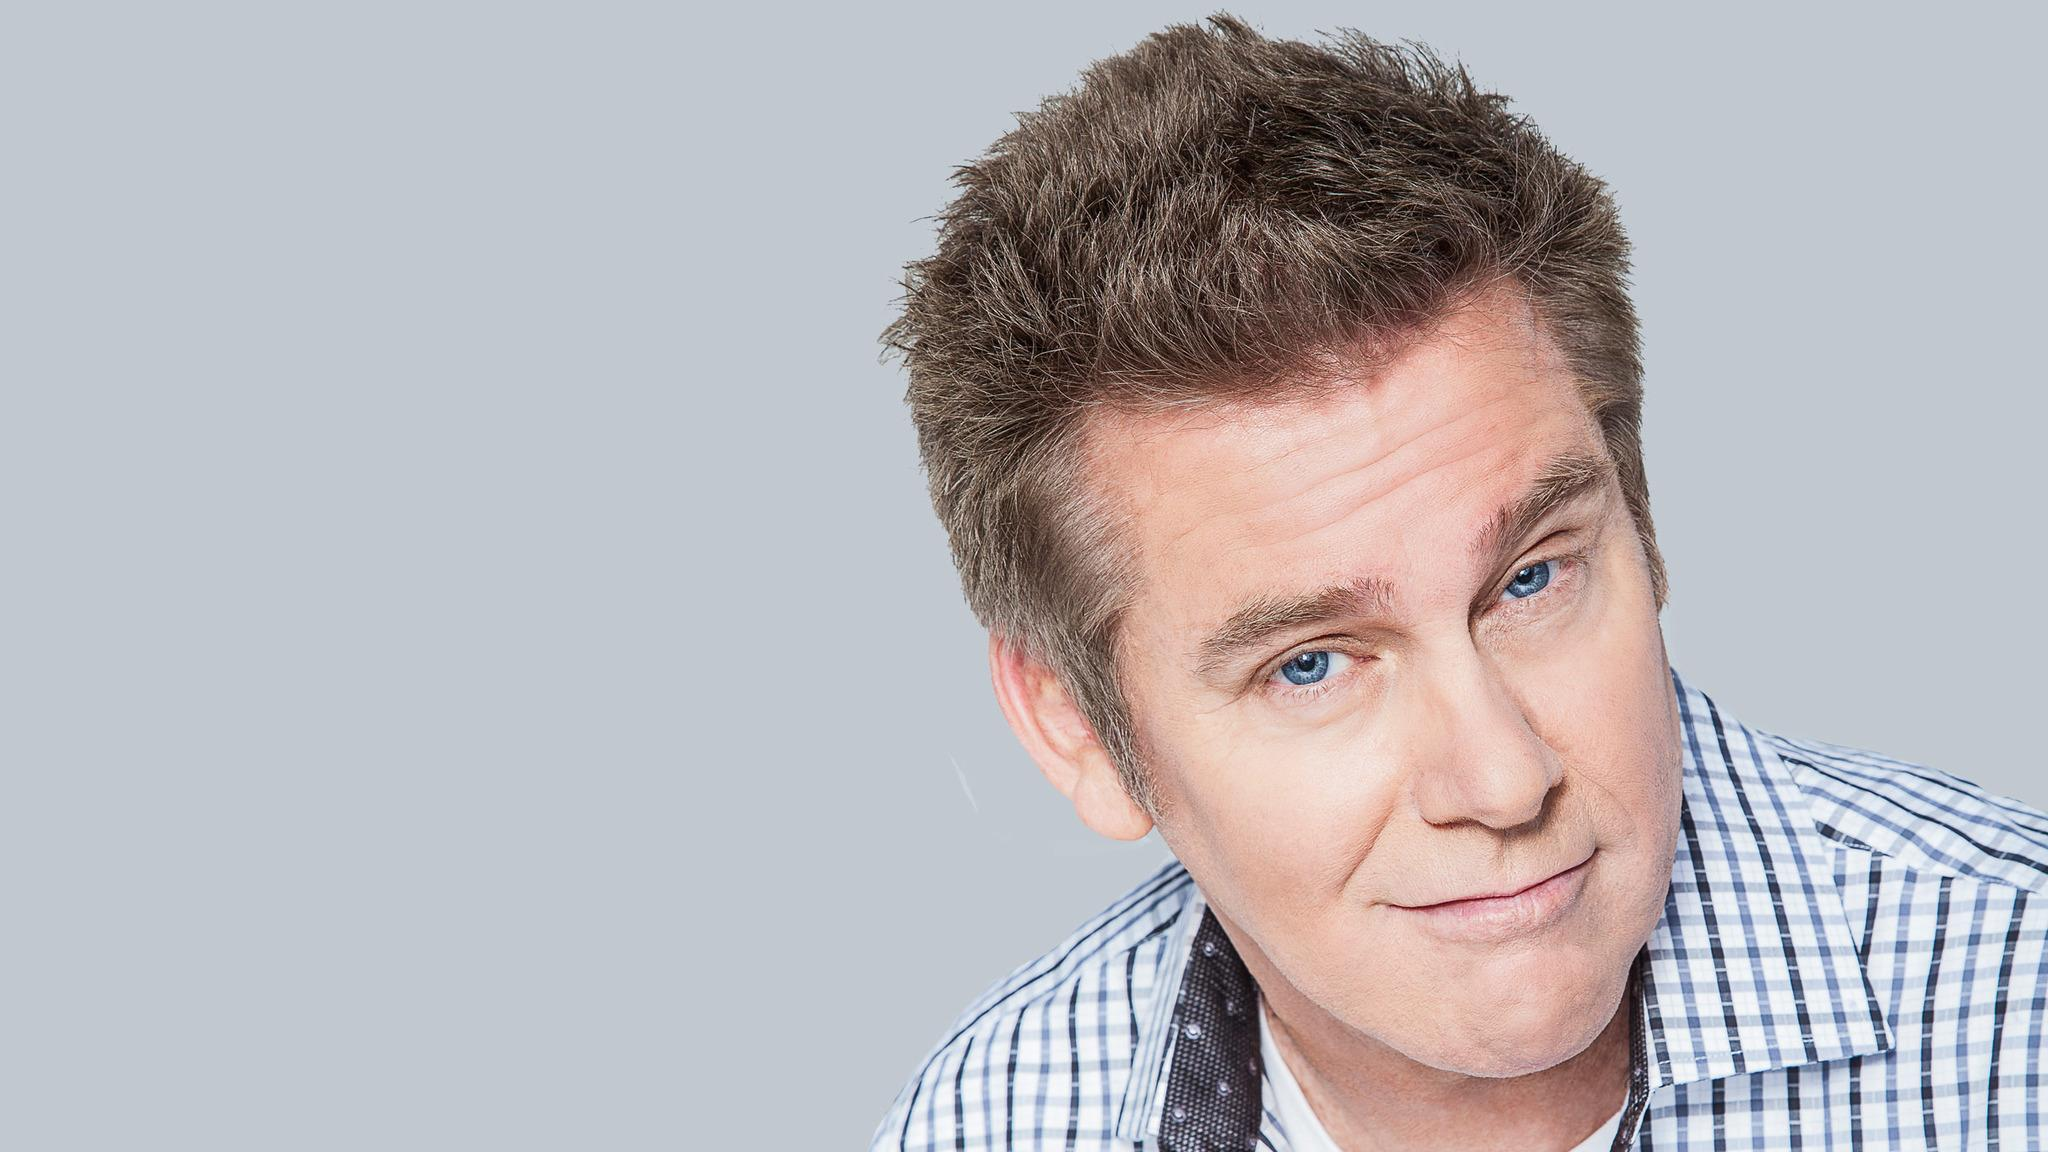 Brian Regan at Irvine Improv